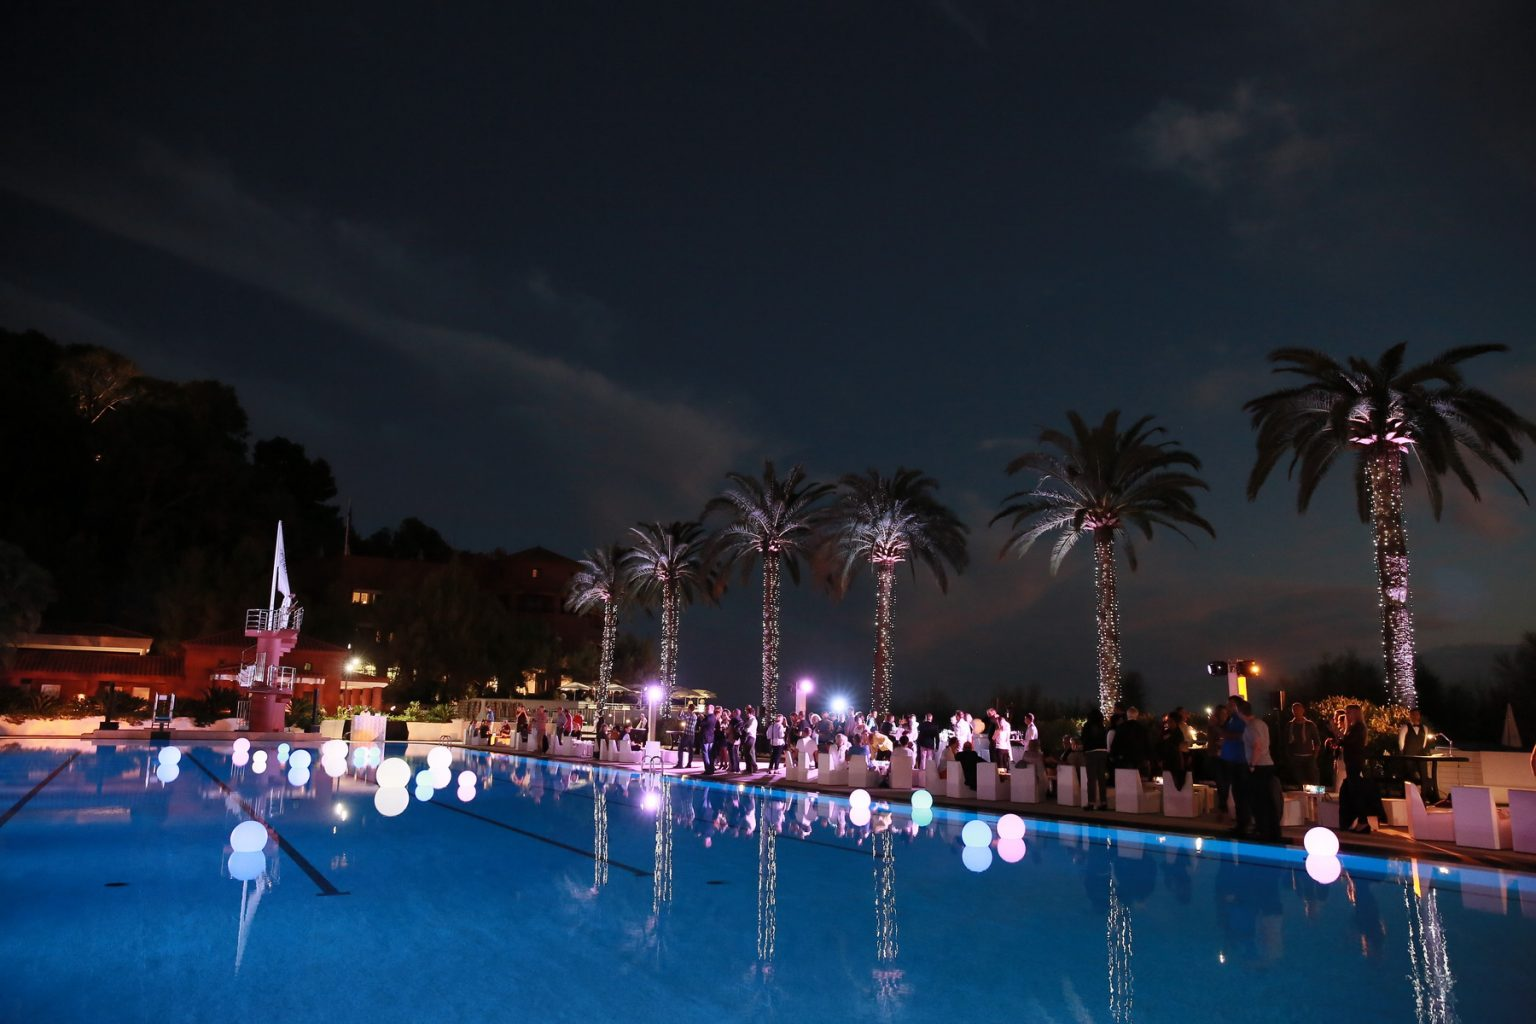 Le Deck Monte Carlo Pool Evening 20 - Le Deck Monte Carlo Pool Evening